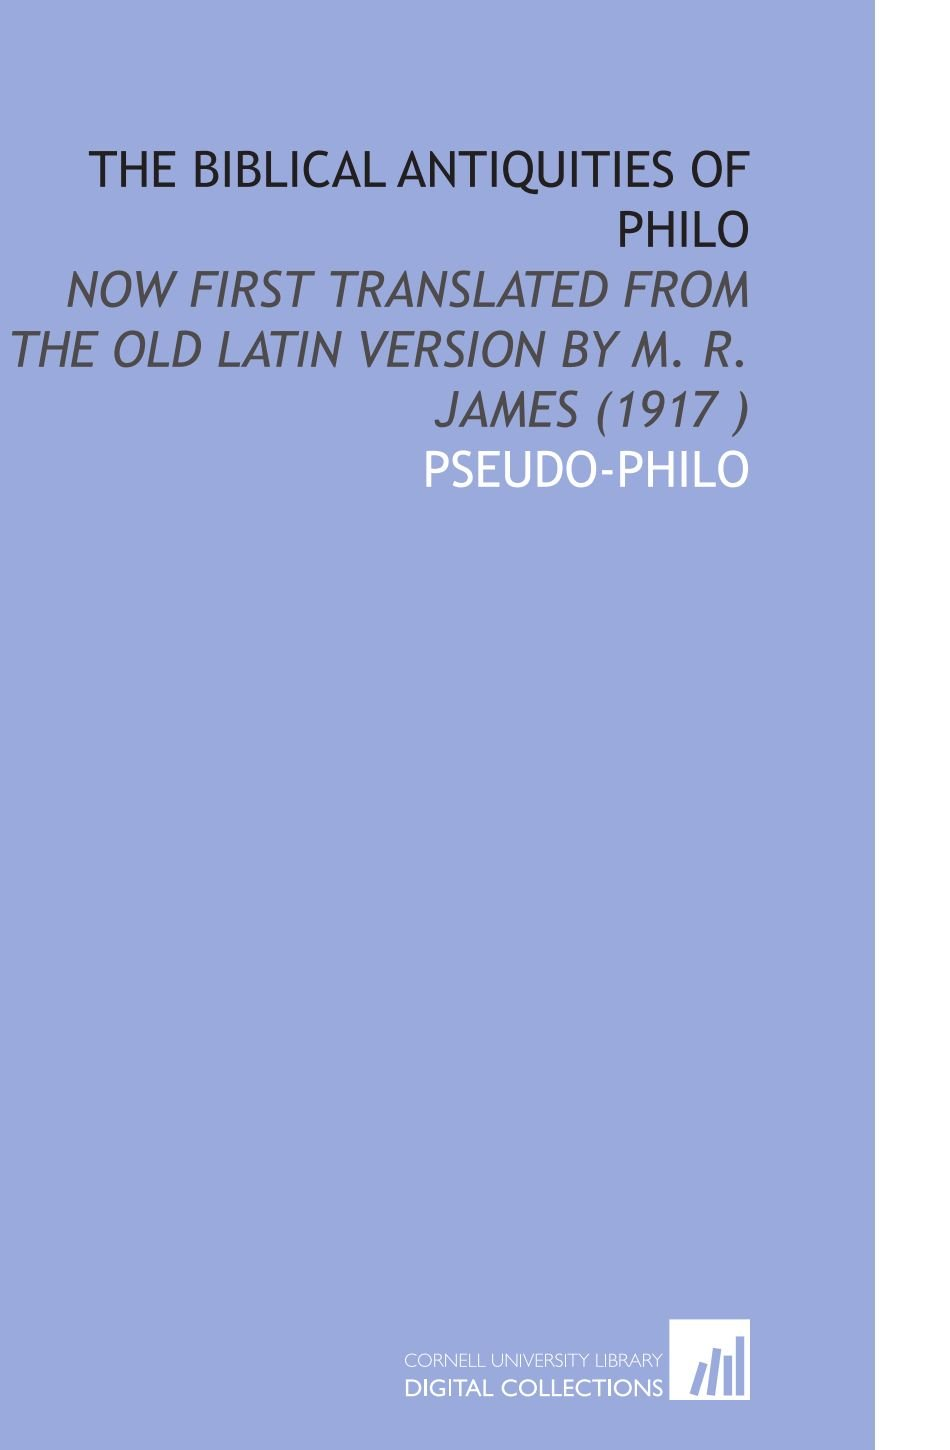 Download The Biblical Antiquities of Philo: Now First Translated From the Old Latin Version by M. R. James (1917 ) pdf